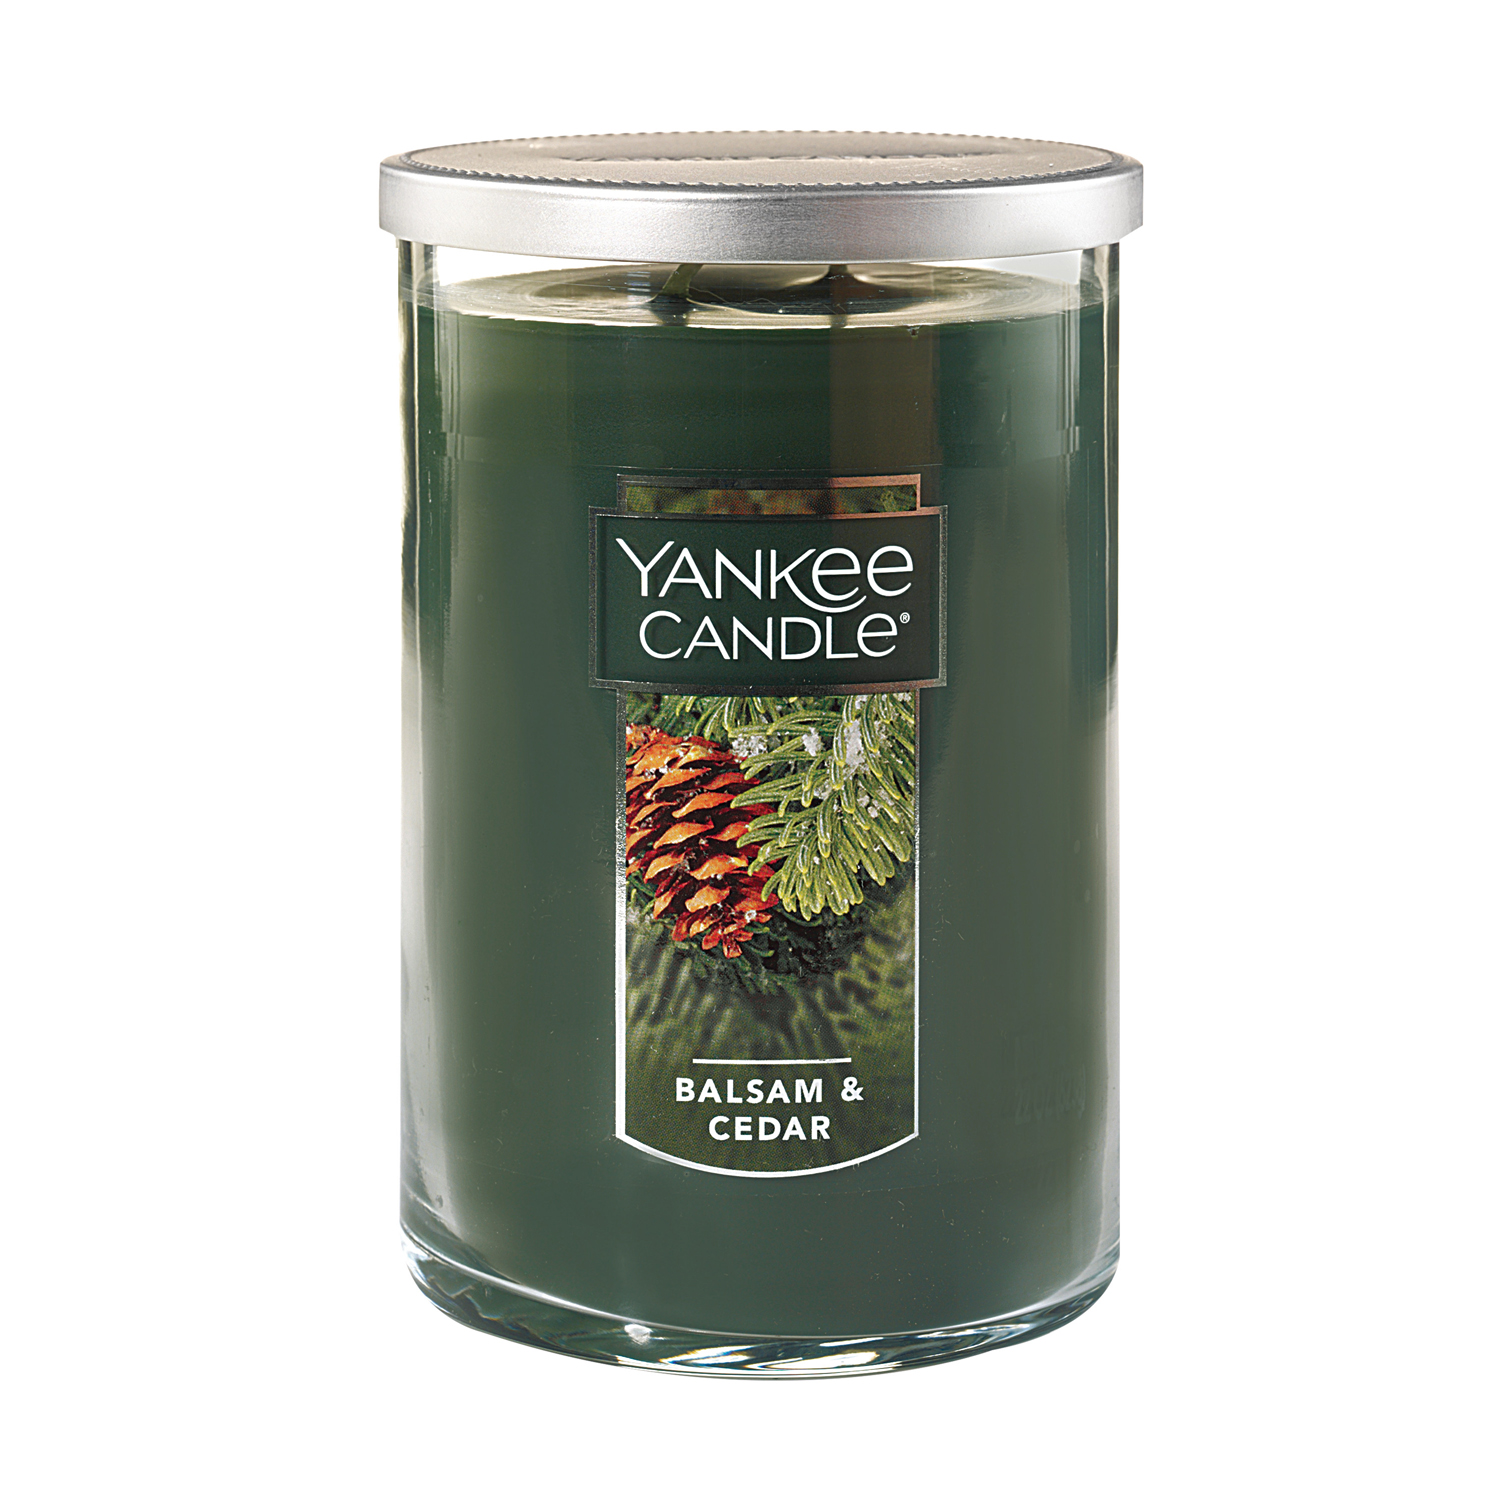 Yankee Candle Large 2-Wick Tumbler Scented Candle, Balsam & Cedar by Newell Brands